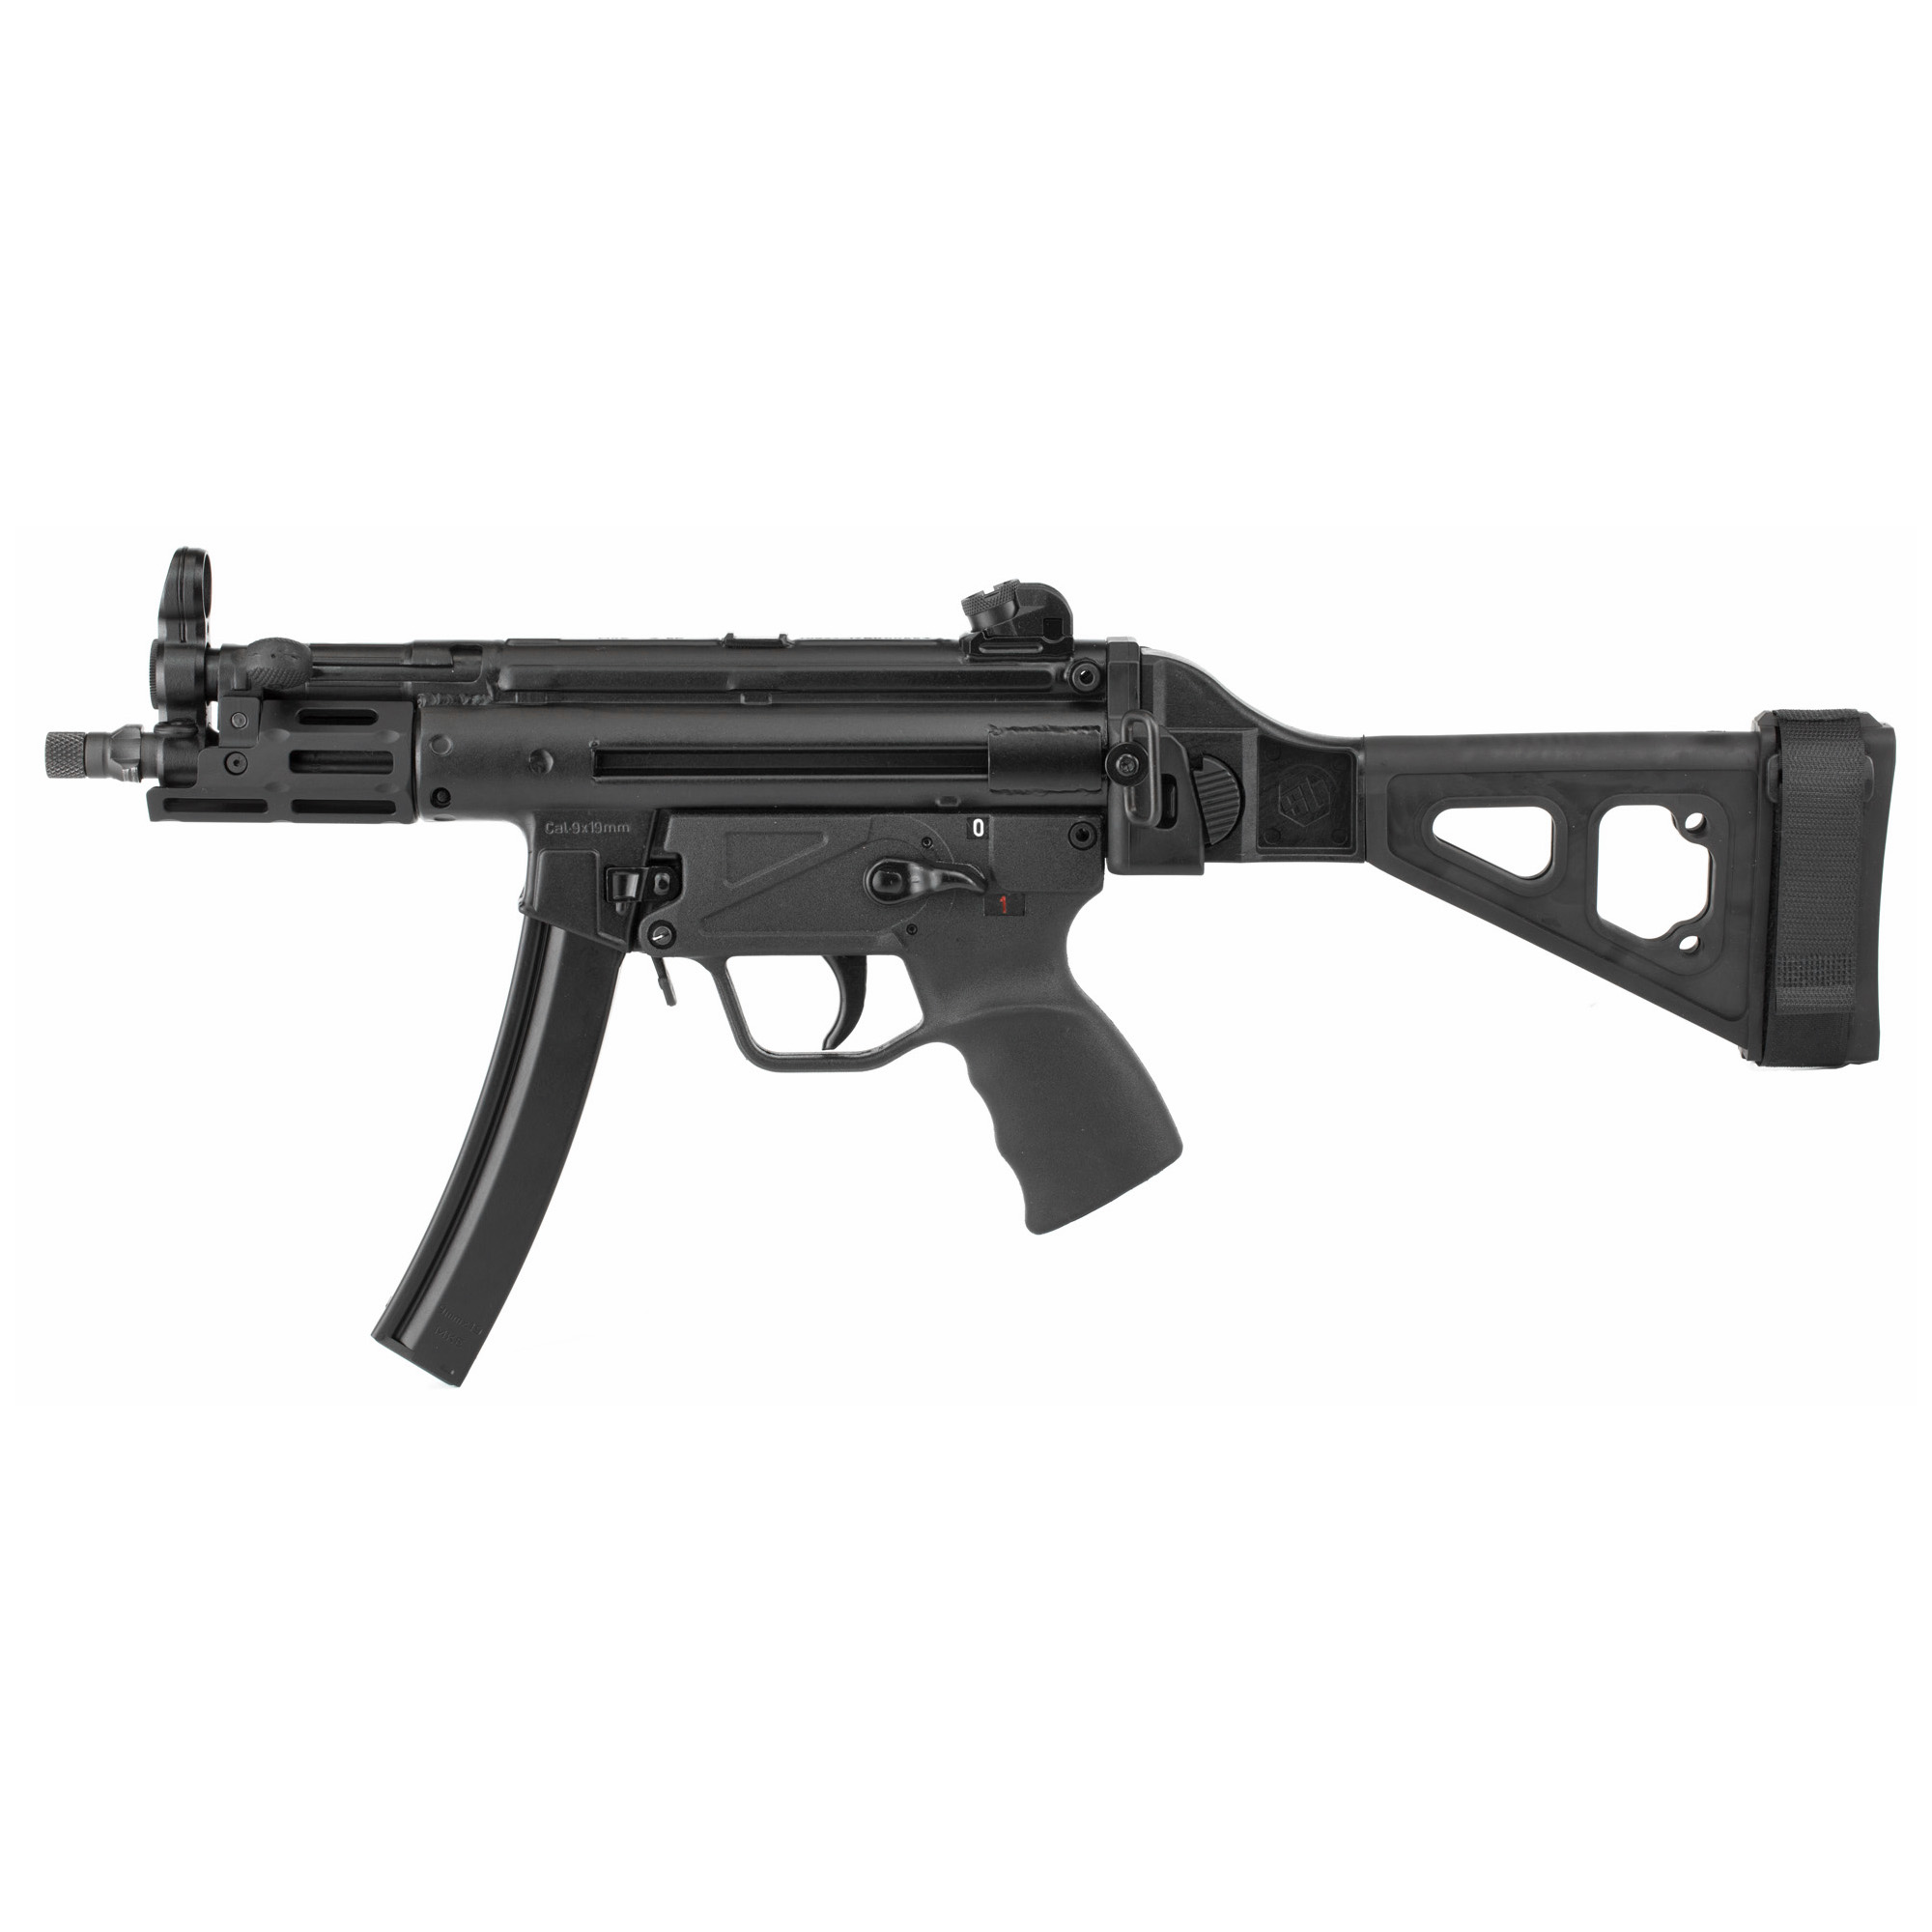 """The Z-5P SB Rail is Zenith's Z-5P outfitted with an M-LOK forearm and a folding pistol brace. It is covered by a five-year warranty"""" and ships in an MKE hard case with a receiver end cap"""" a Picatinny optic rail"""" three magazines"""" a military-style sling"""" two extra takedown pins"""" a cleaning kit"""" and a user manual."""